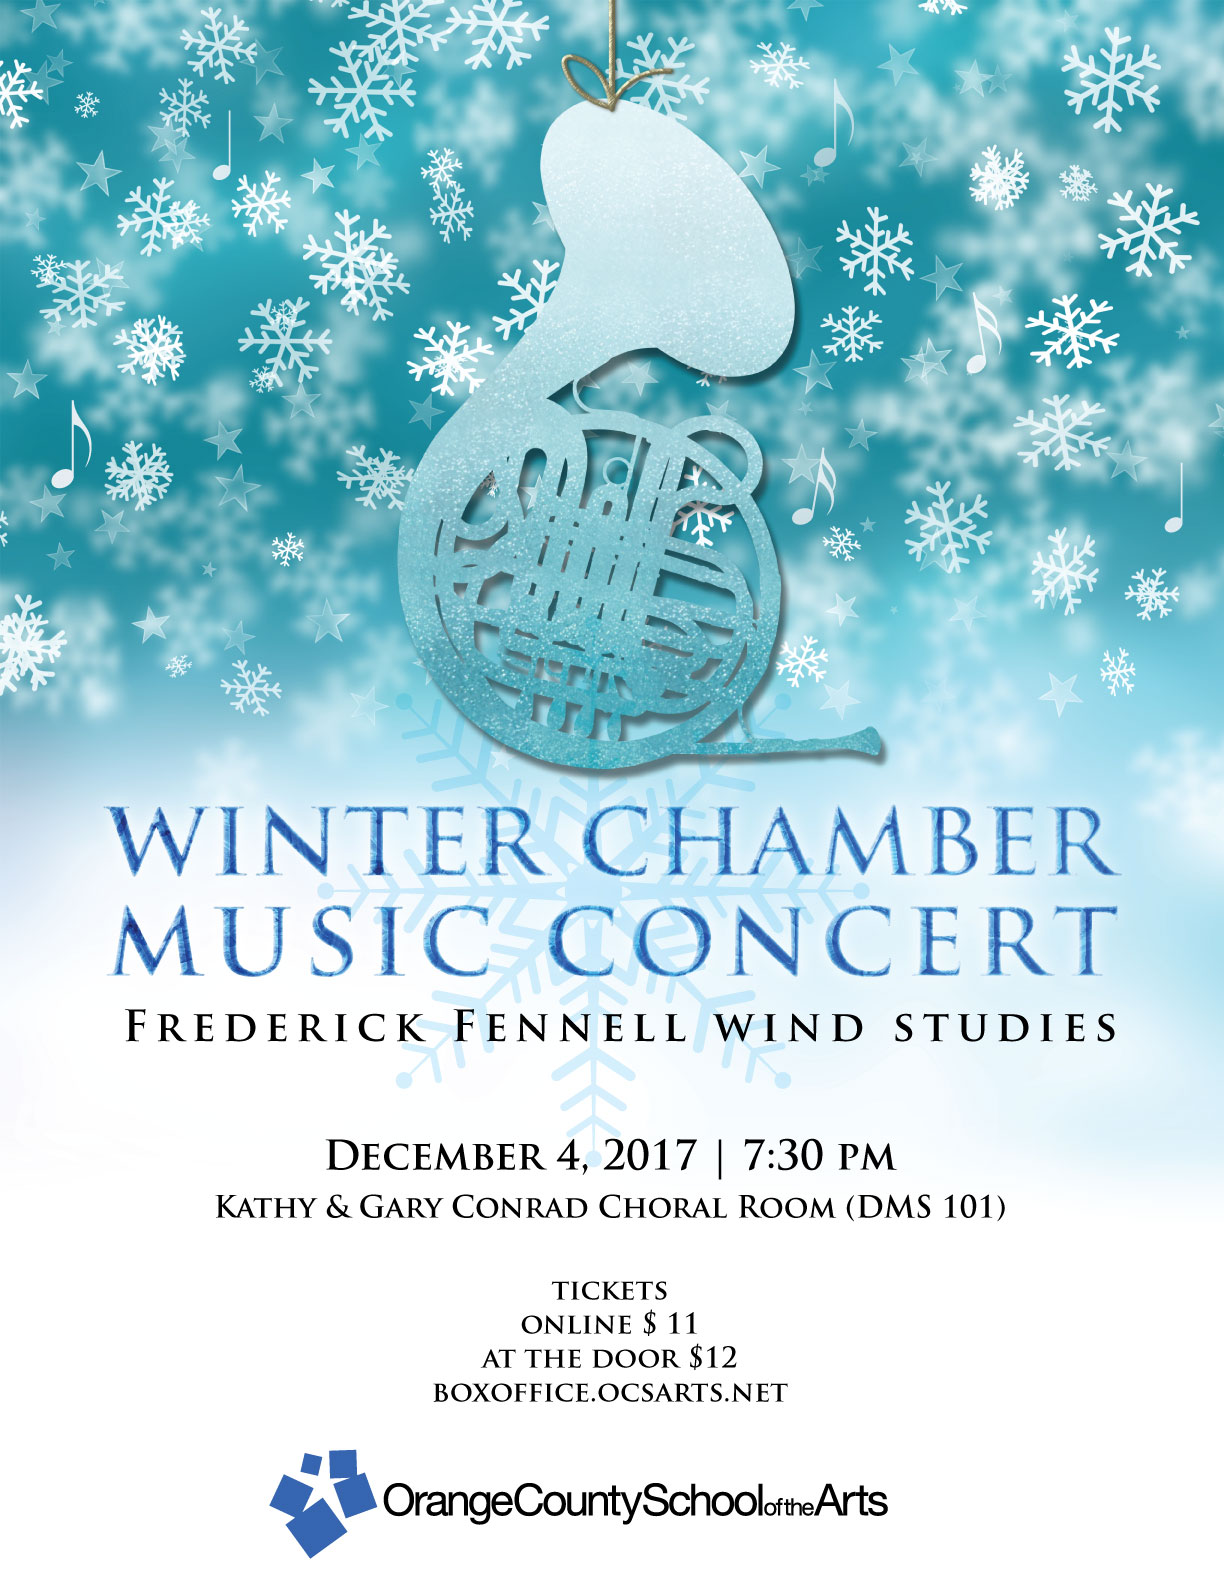 Save the Date: Our Winter Chamber Music Concert is coming up!